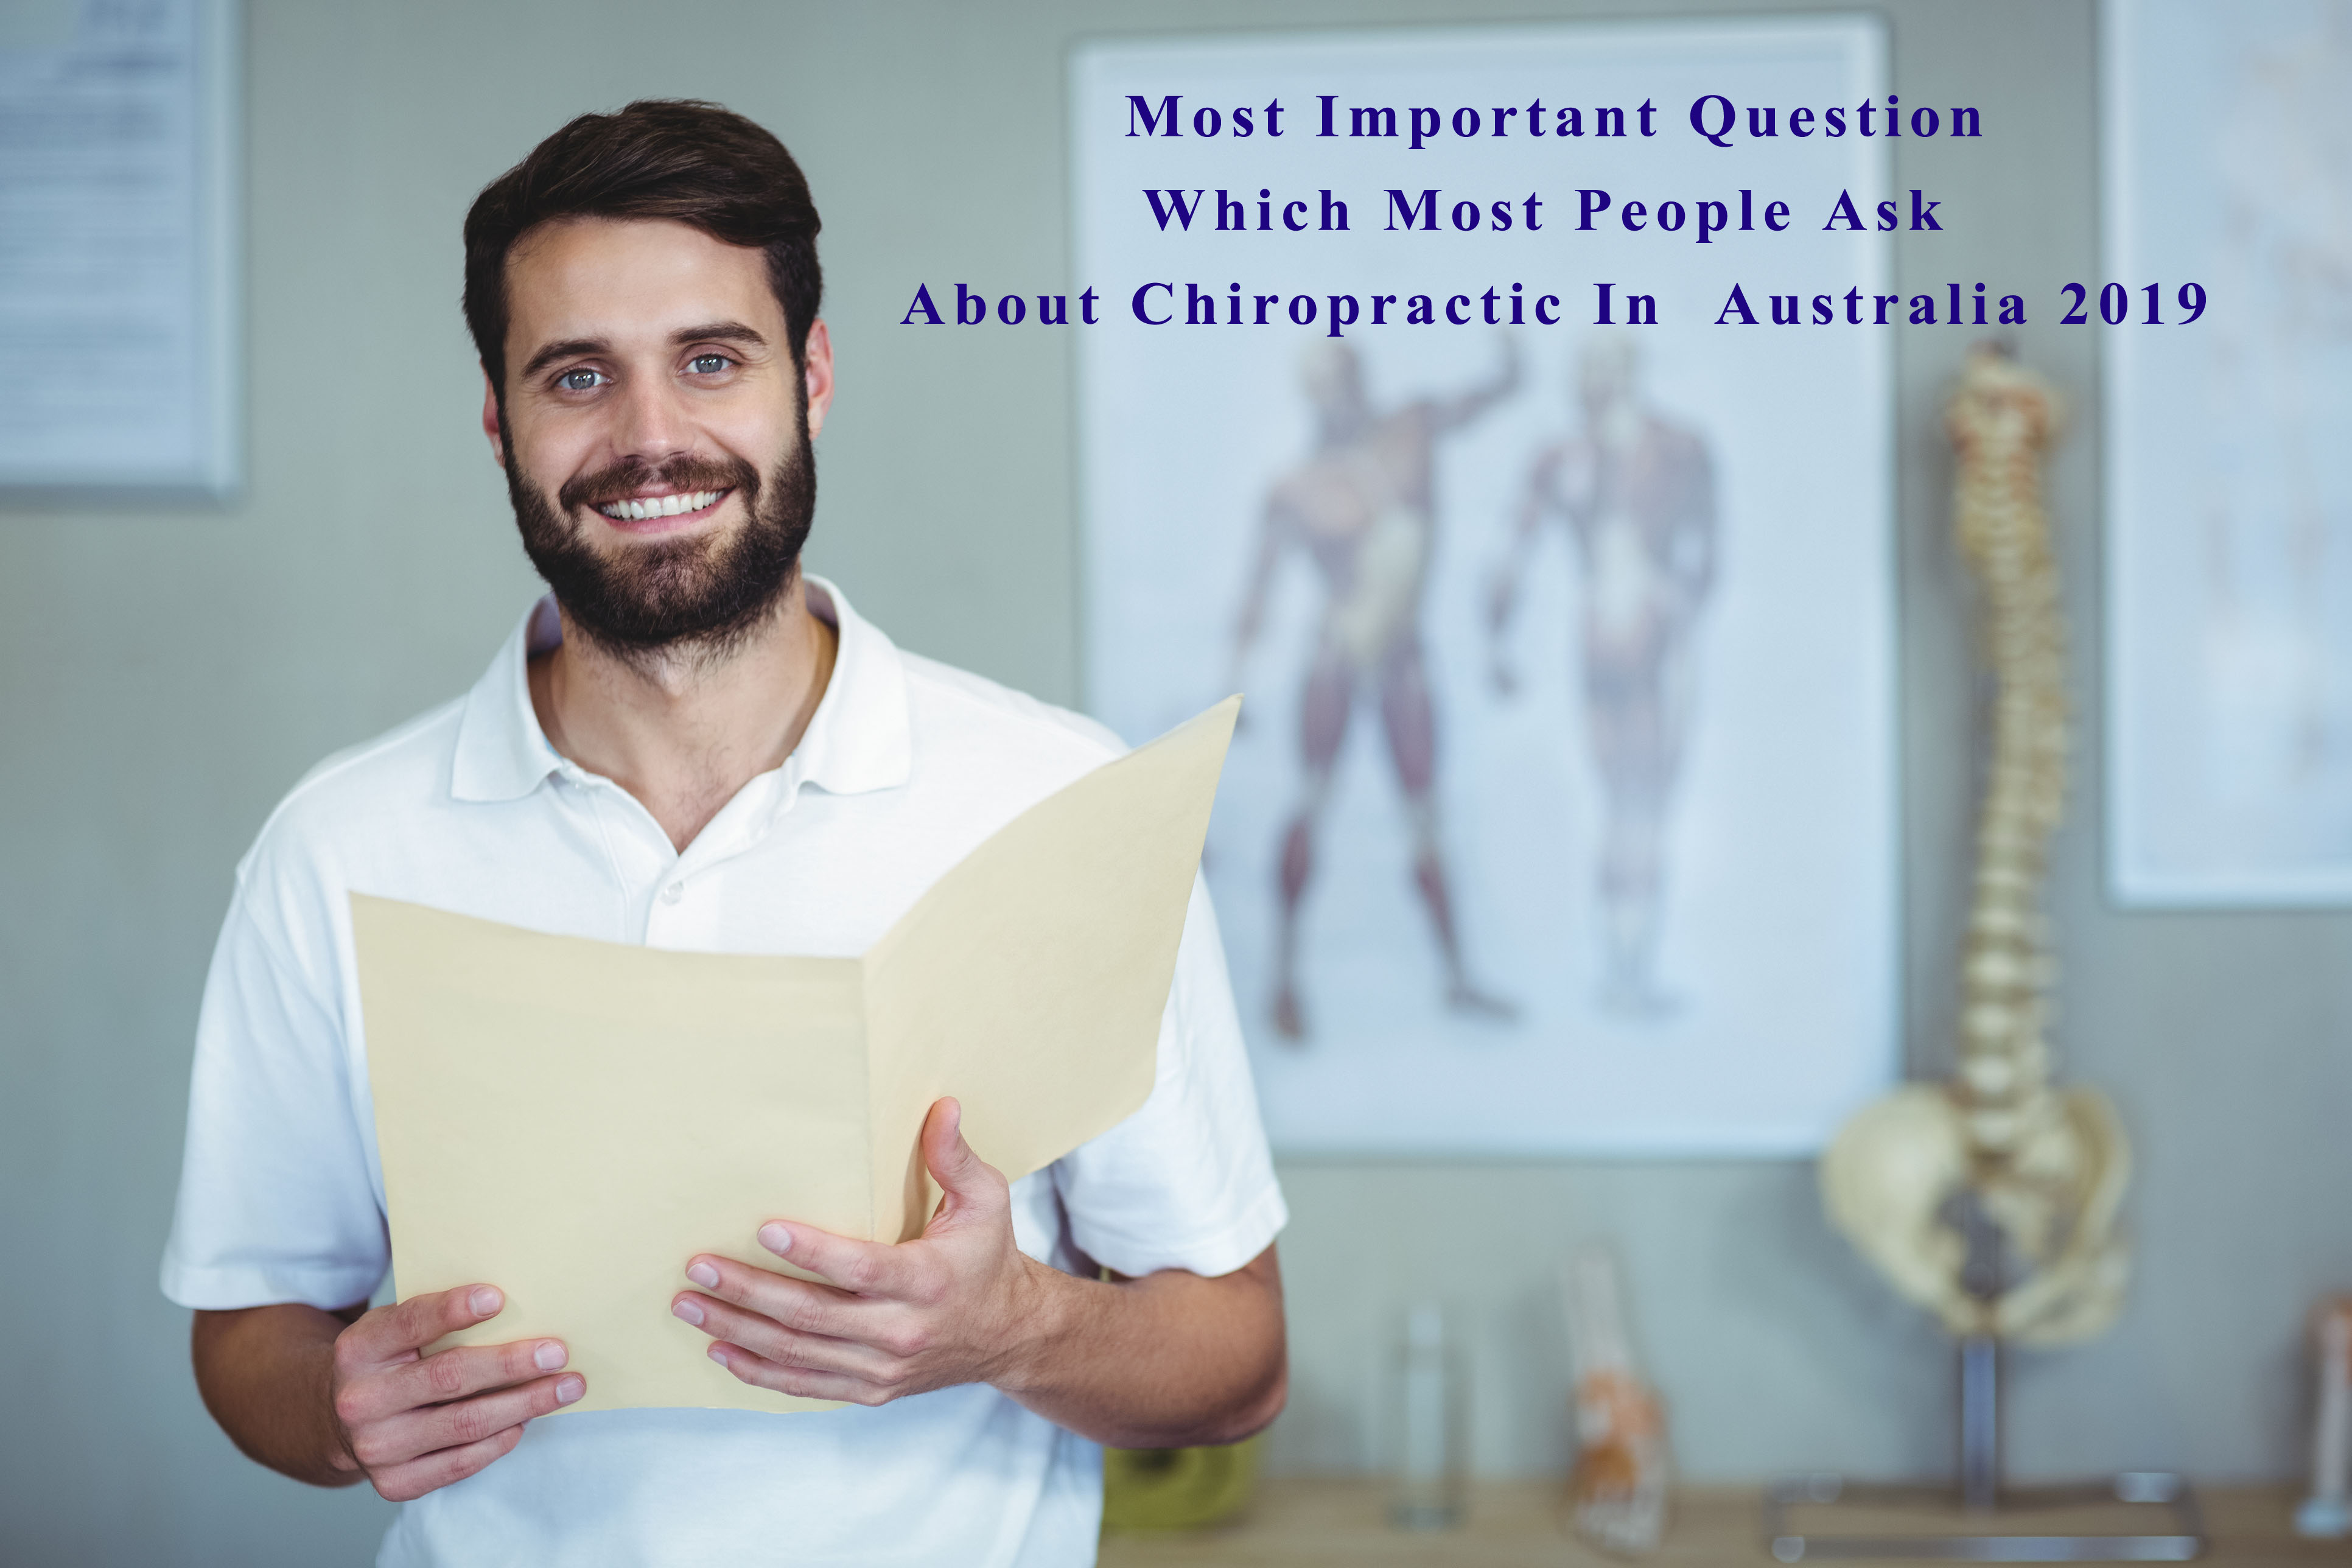 Most Important Question Which Most People Ask About Chiropractic In Australia 2019